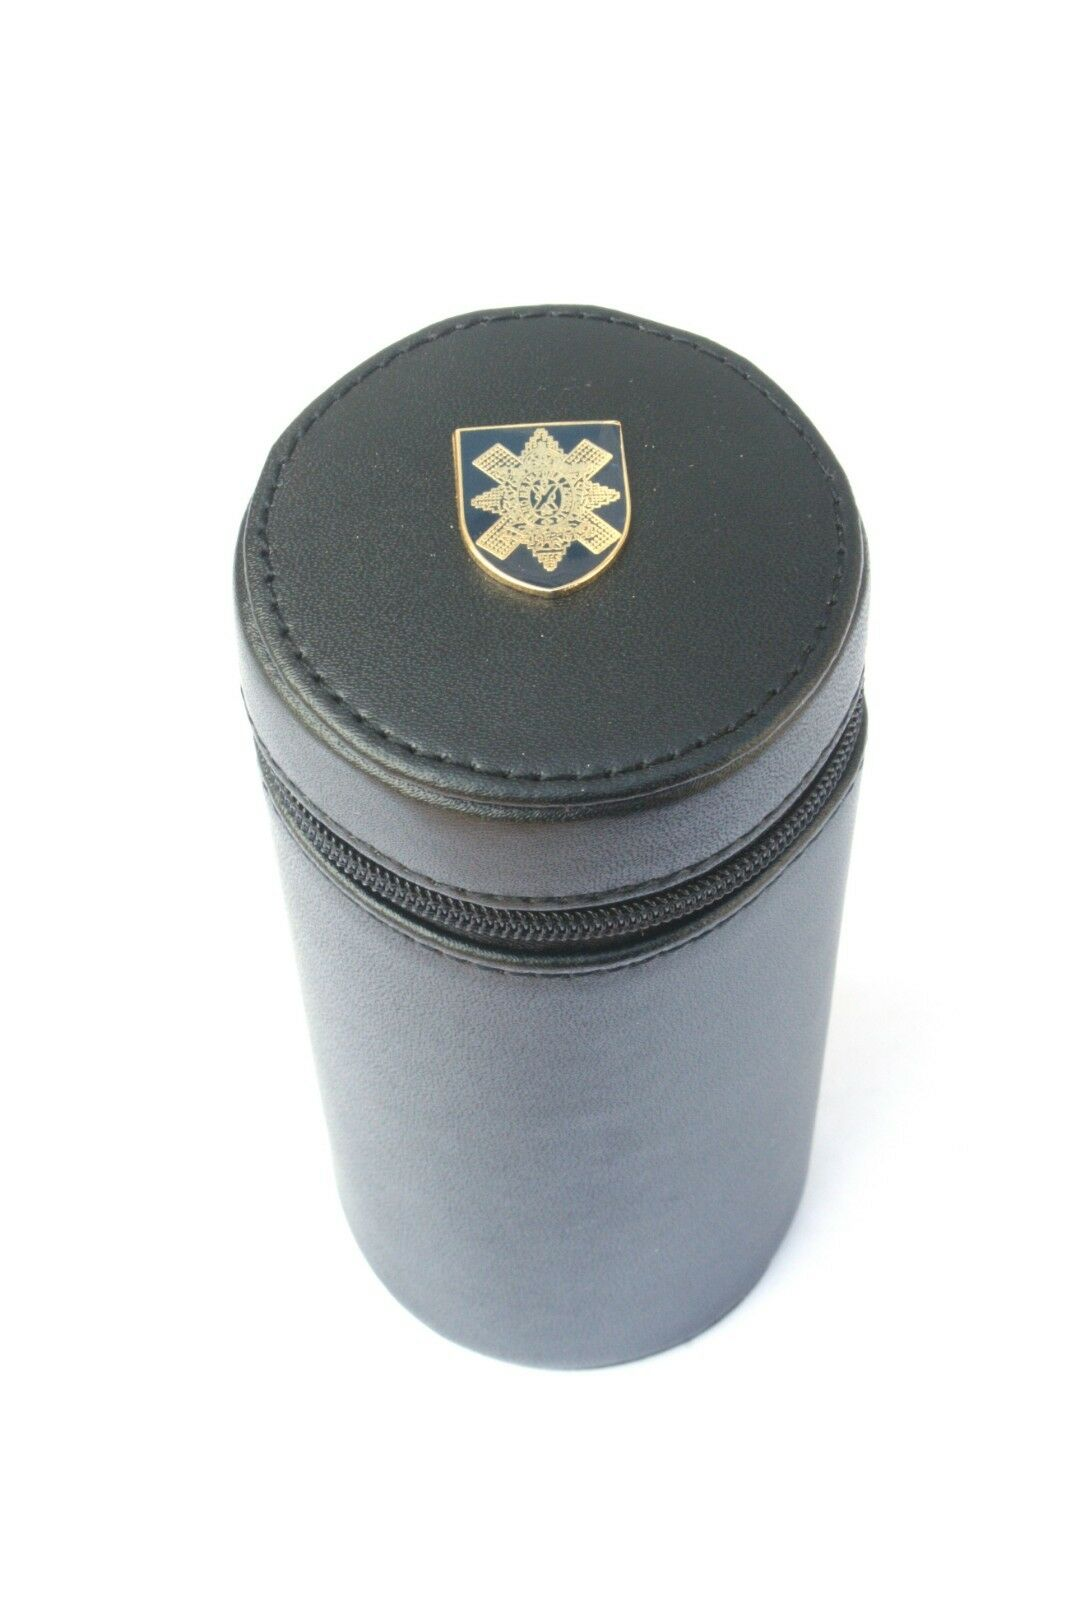 Negro Watch Peg Position Finder Numberojo Cups 1-10 negro Leather BGK31